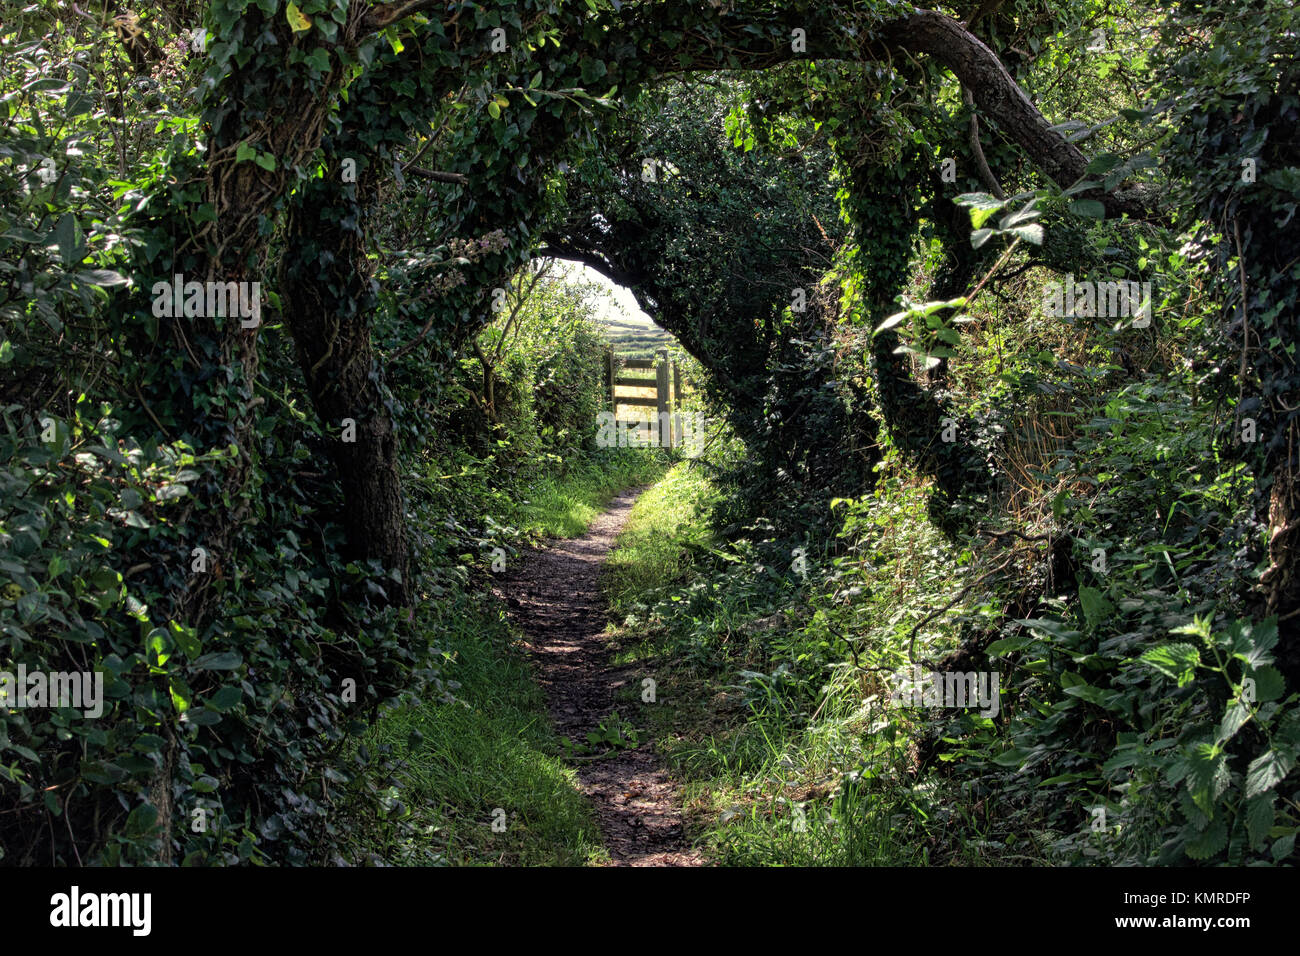 a footpath showing a tunnel of trees with a sunlit gate at the end Stock Photo